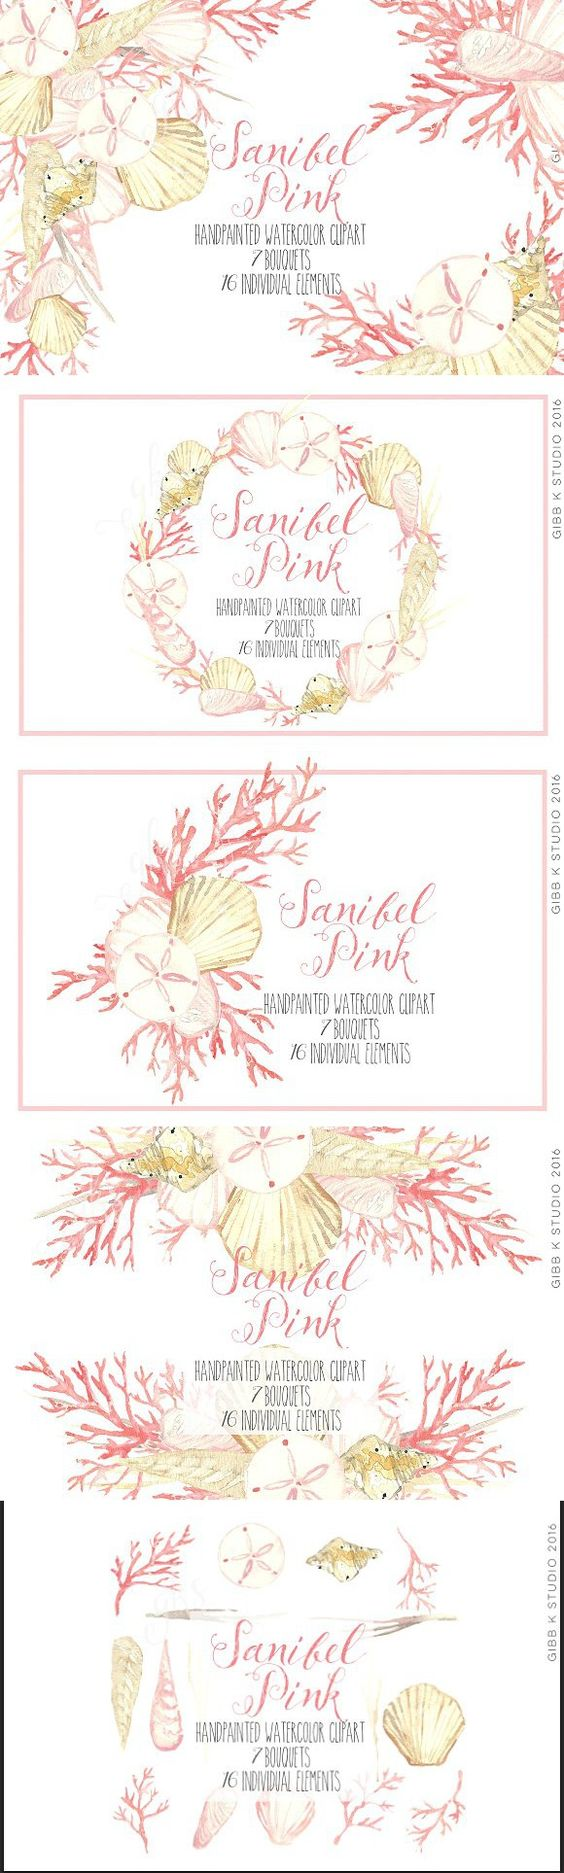 Sanibel Pink Seashell clipart. Wedding Card Templates.